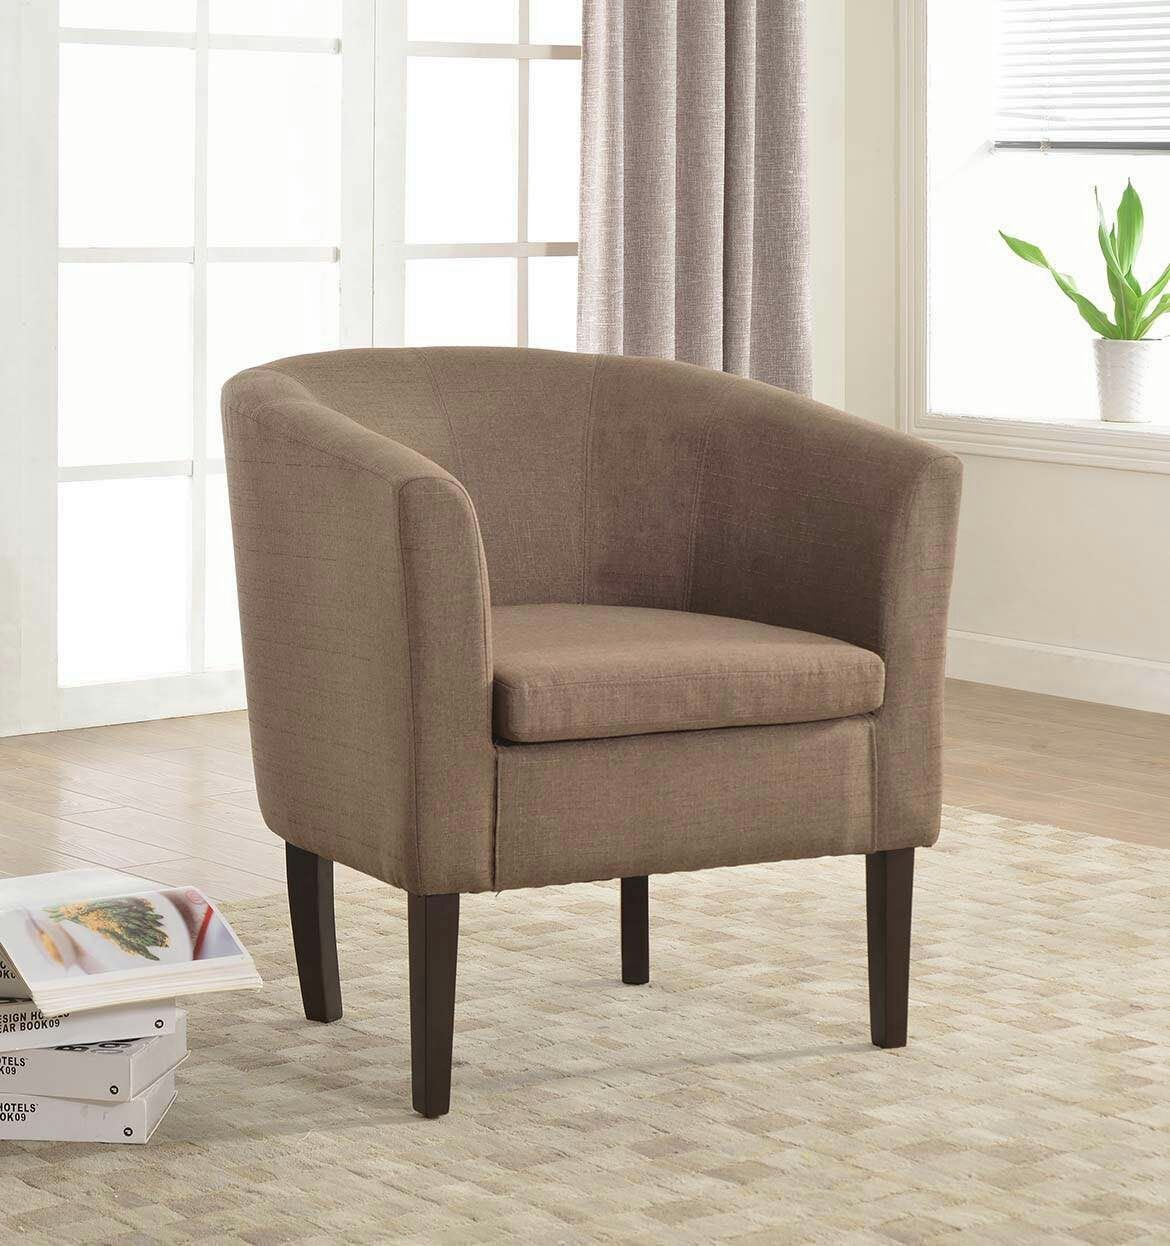 Home Life Armen Linon Brown Sofa Arm Club Chairs Linen Finish